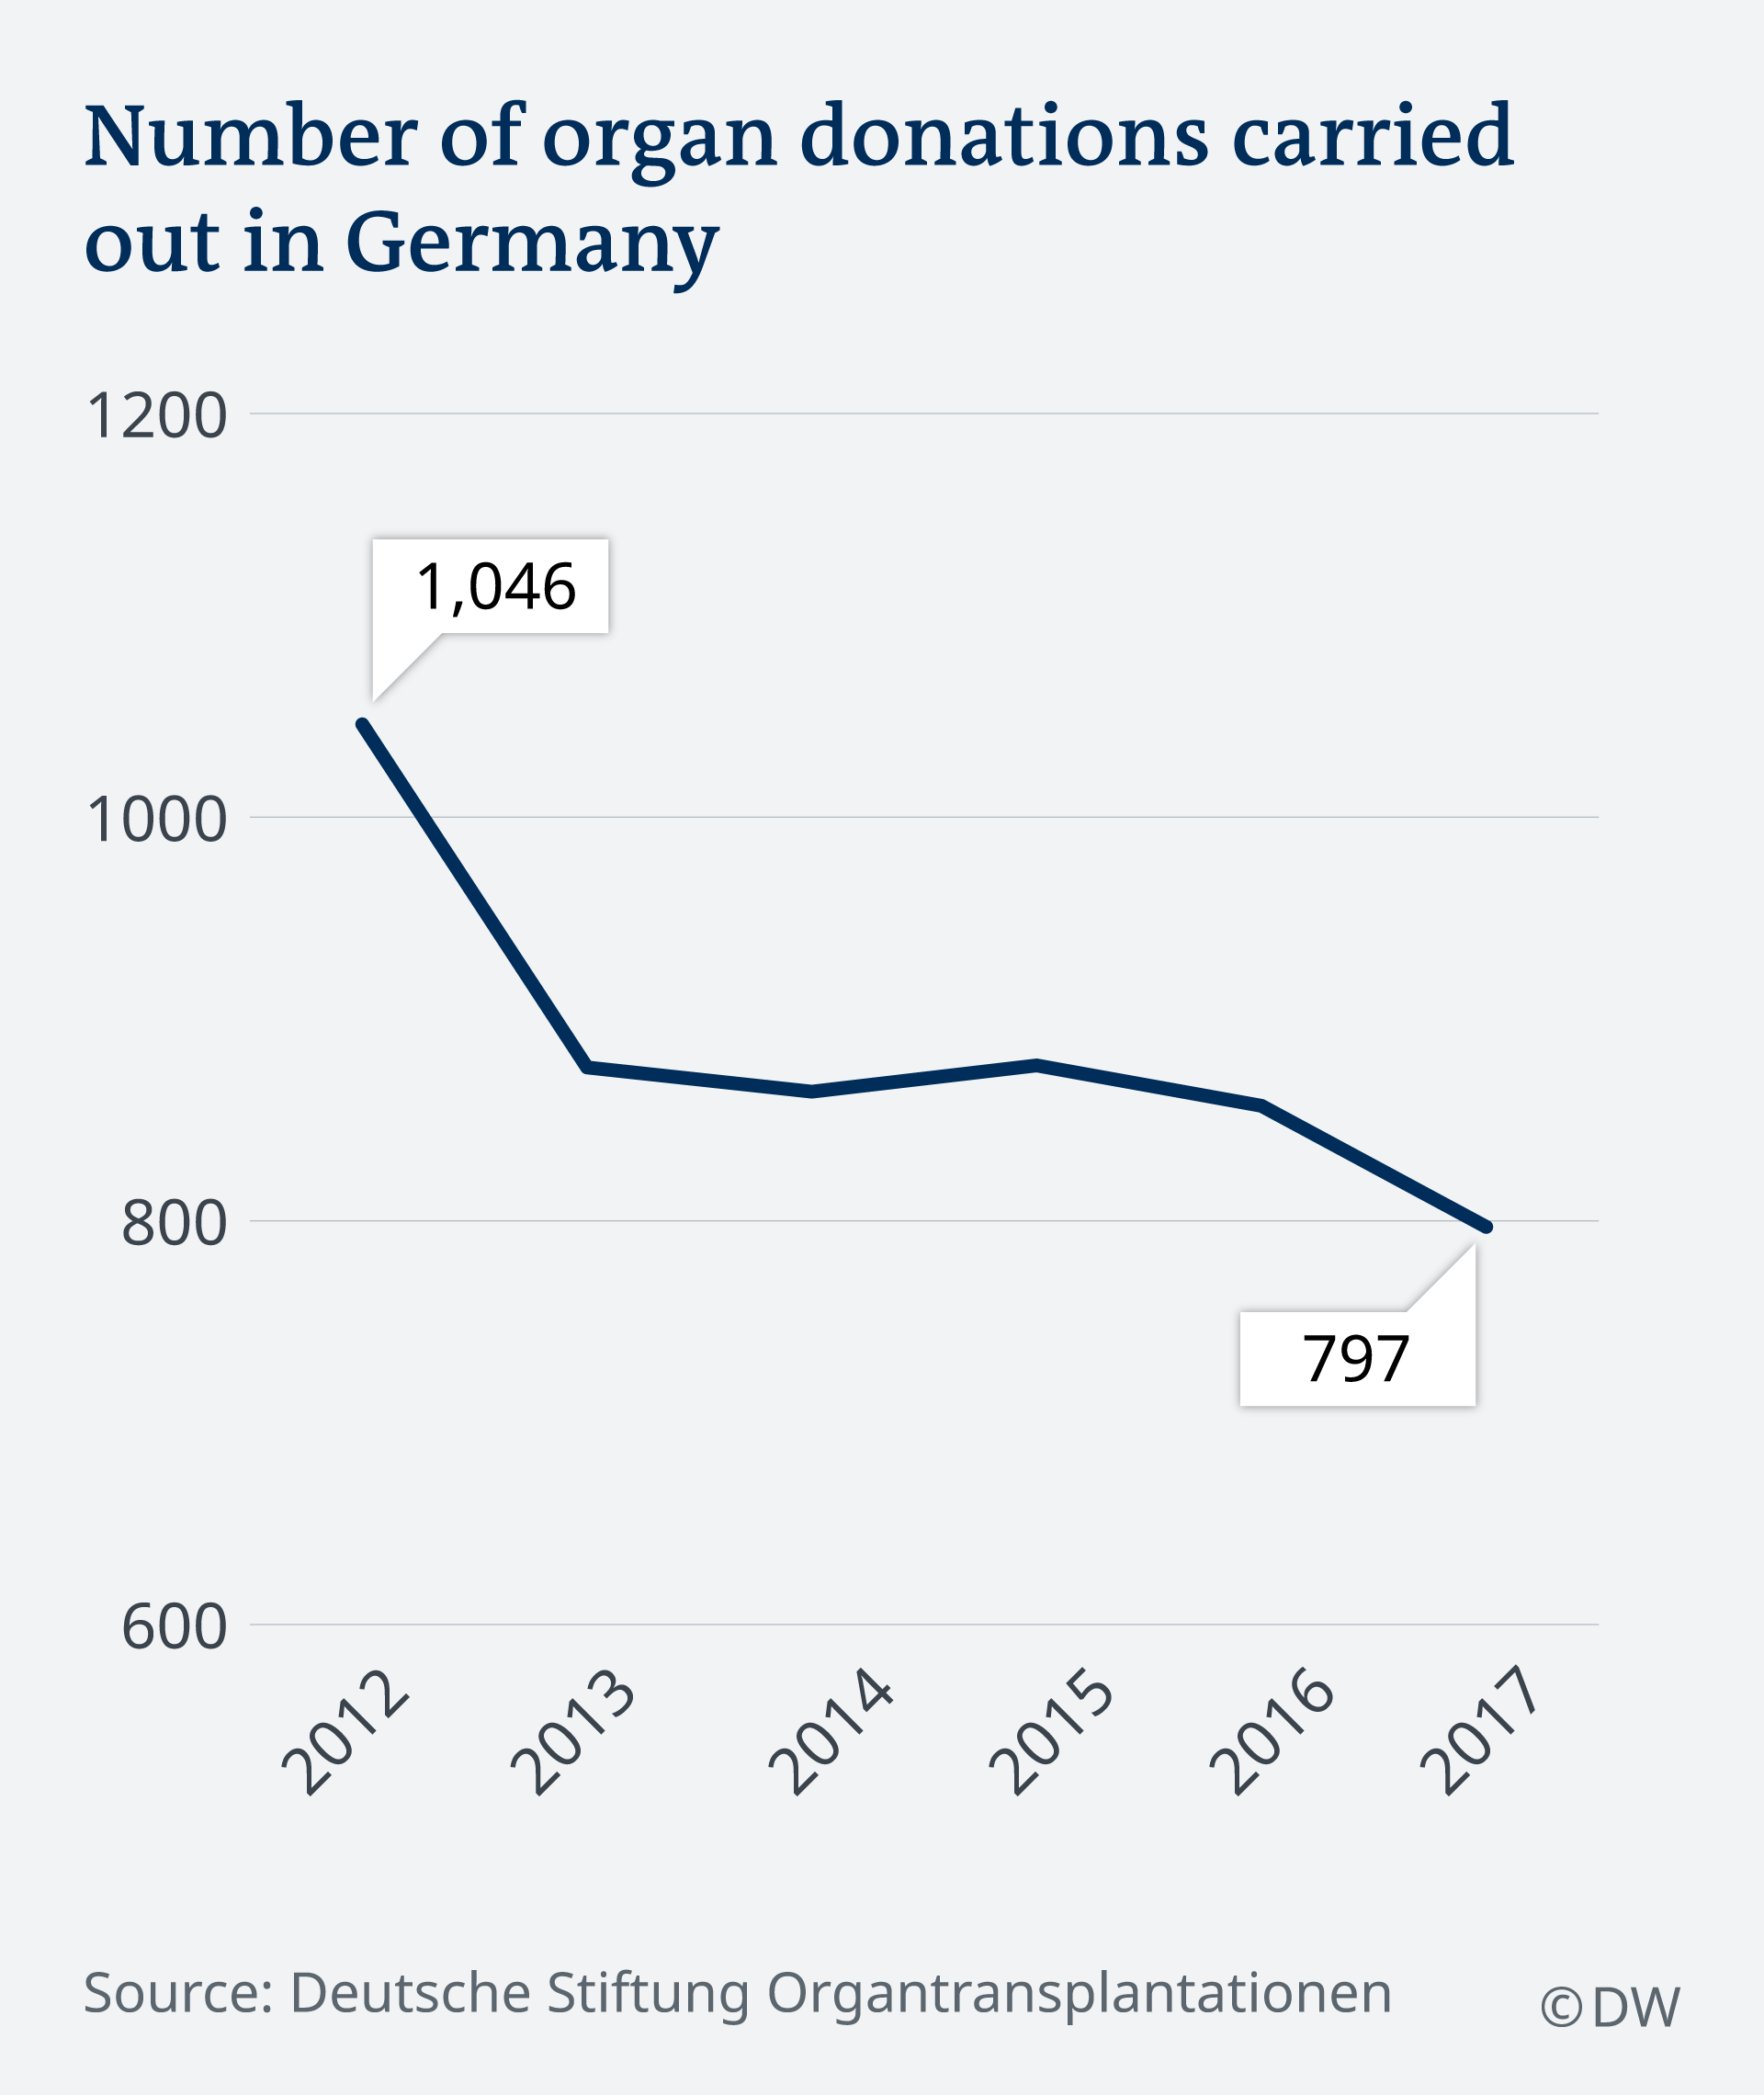 Number of organ donations carried out in Germany